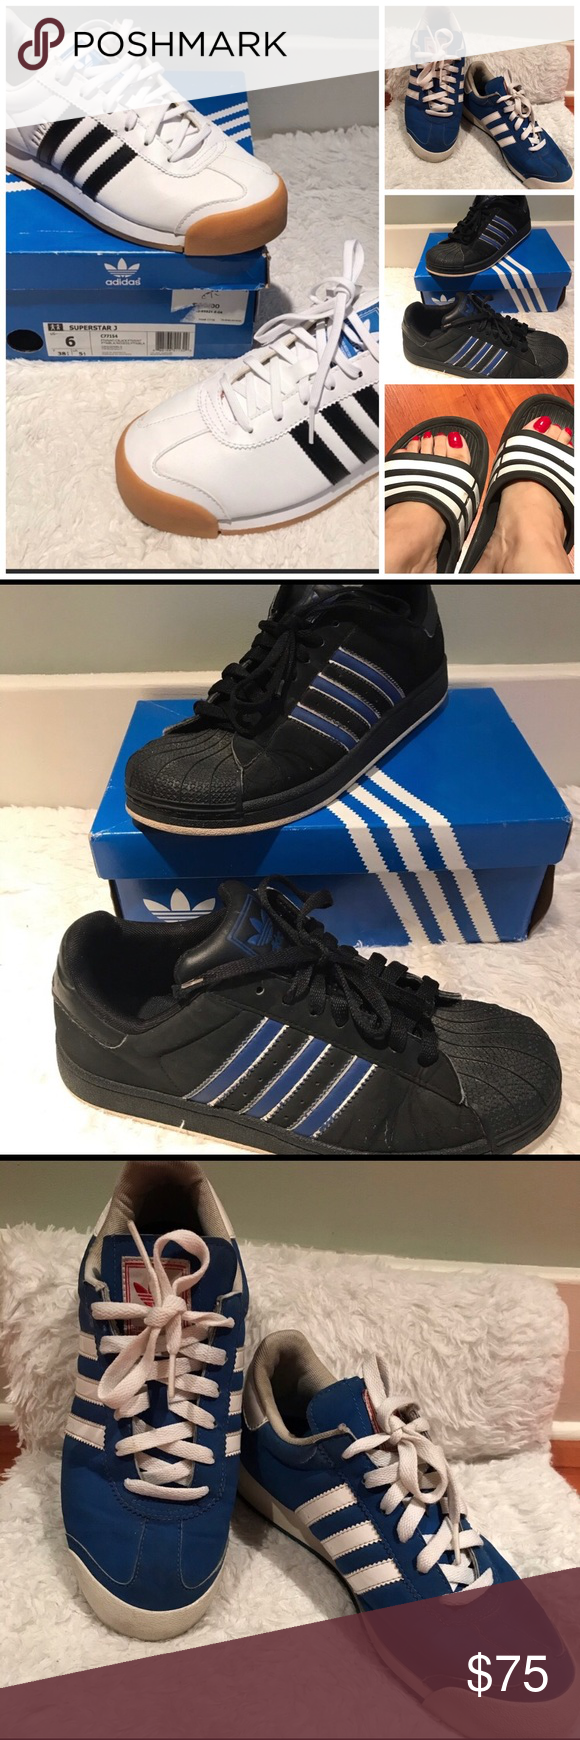 3pc Adidas 5.5 & 6 Sneaker Bundle Preloved condition Sz: 5.5